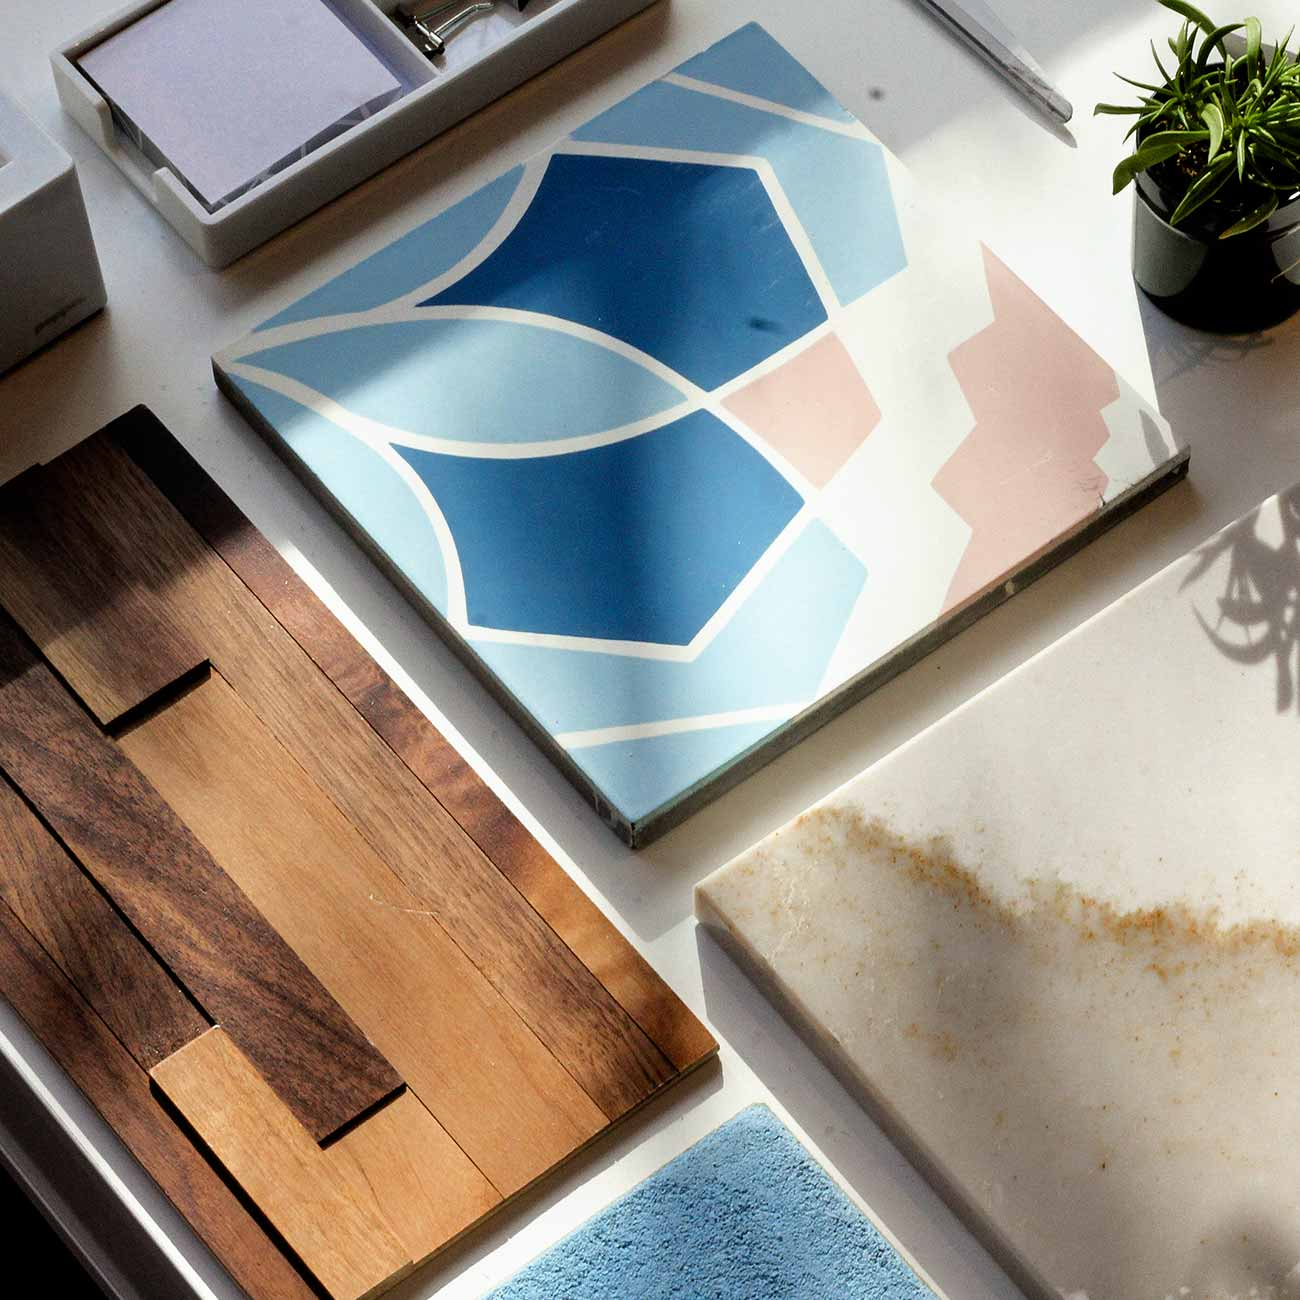 Interior Design Guide: How to Make the Usable, Beautiful - Poppy Barley